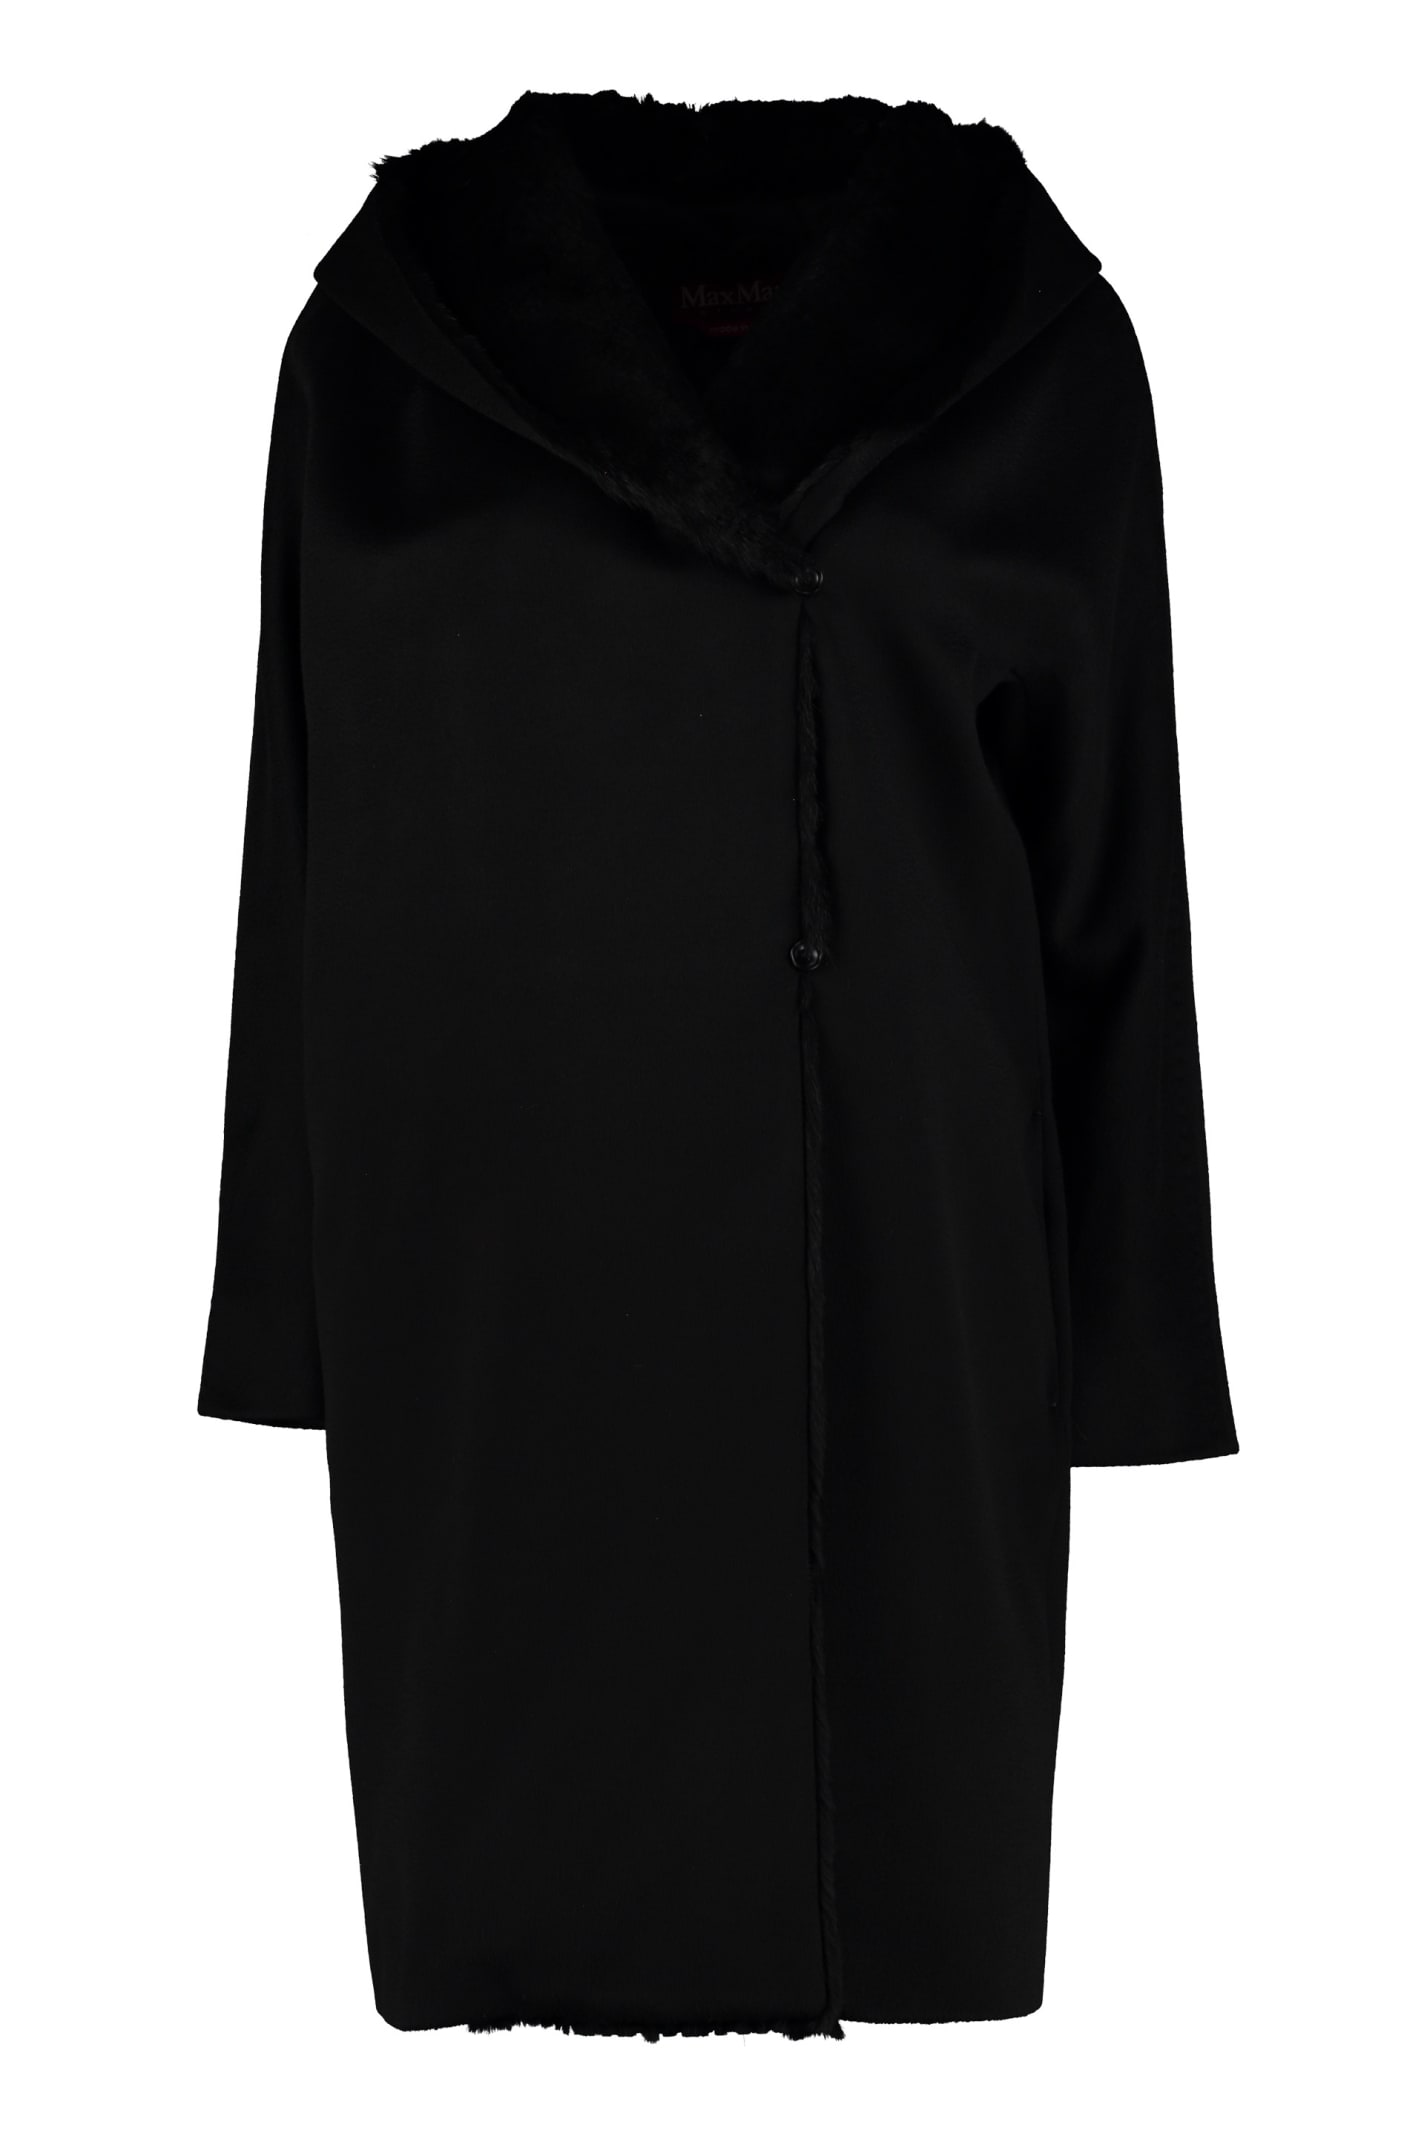 Max Mara Studio Virgin Wool Coat